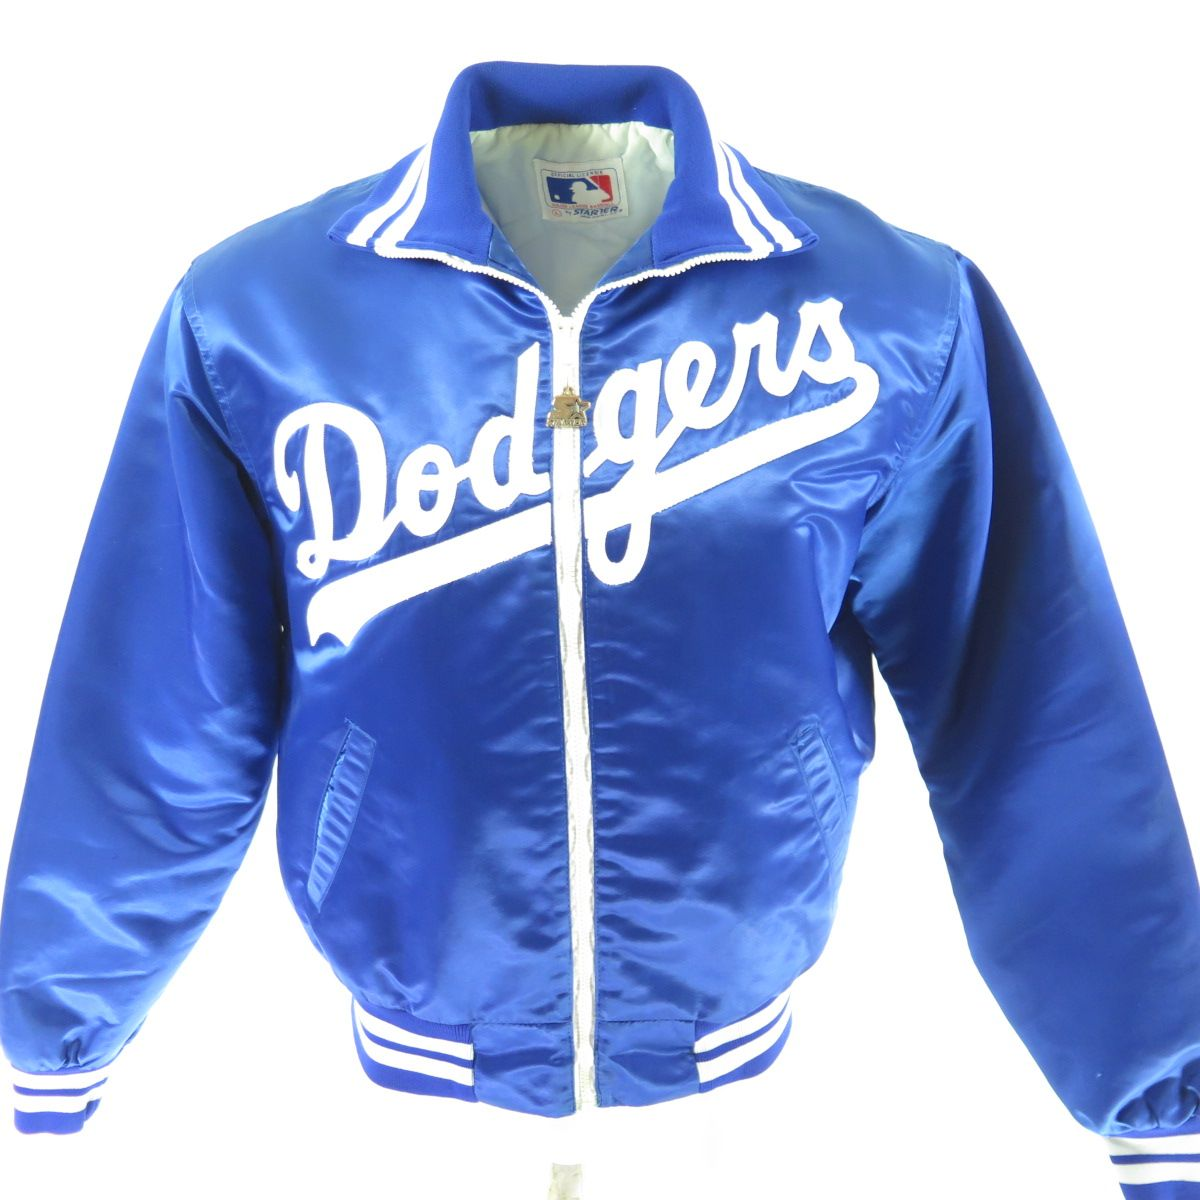 3d3aed407 Vintage 80s Los Angeles Dodgers Starter Jacket Mens L Satin MLB ...